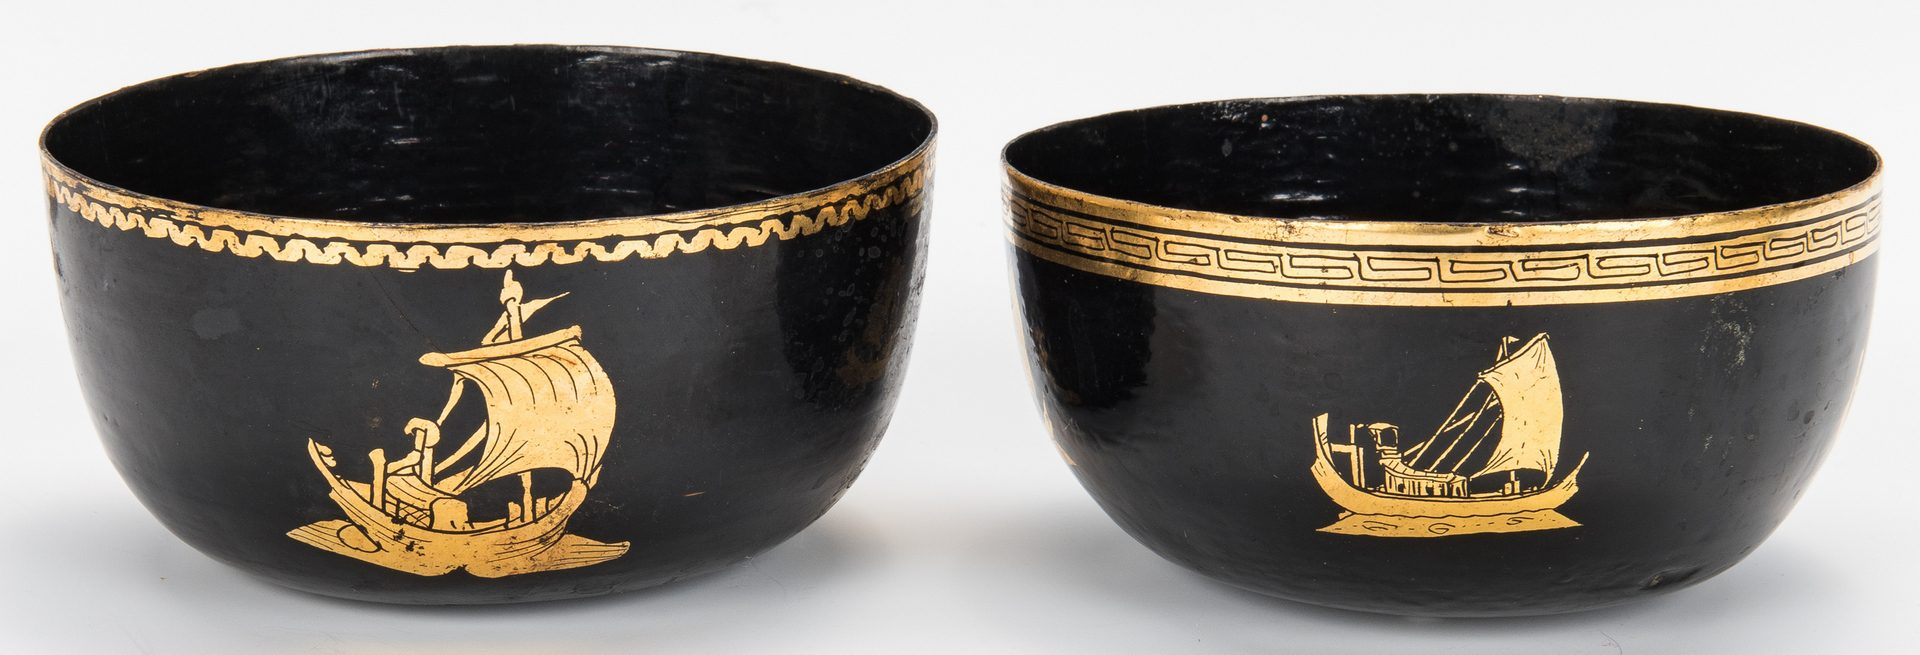 Lot 404: Group of 27 Assorted Asian Lacquerware Items